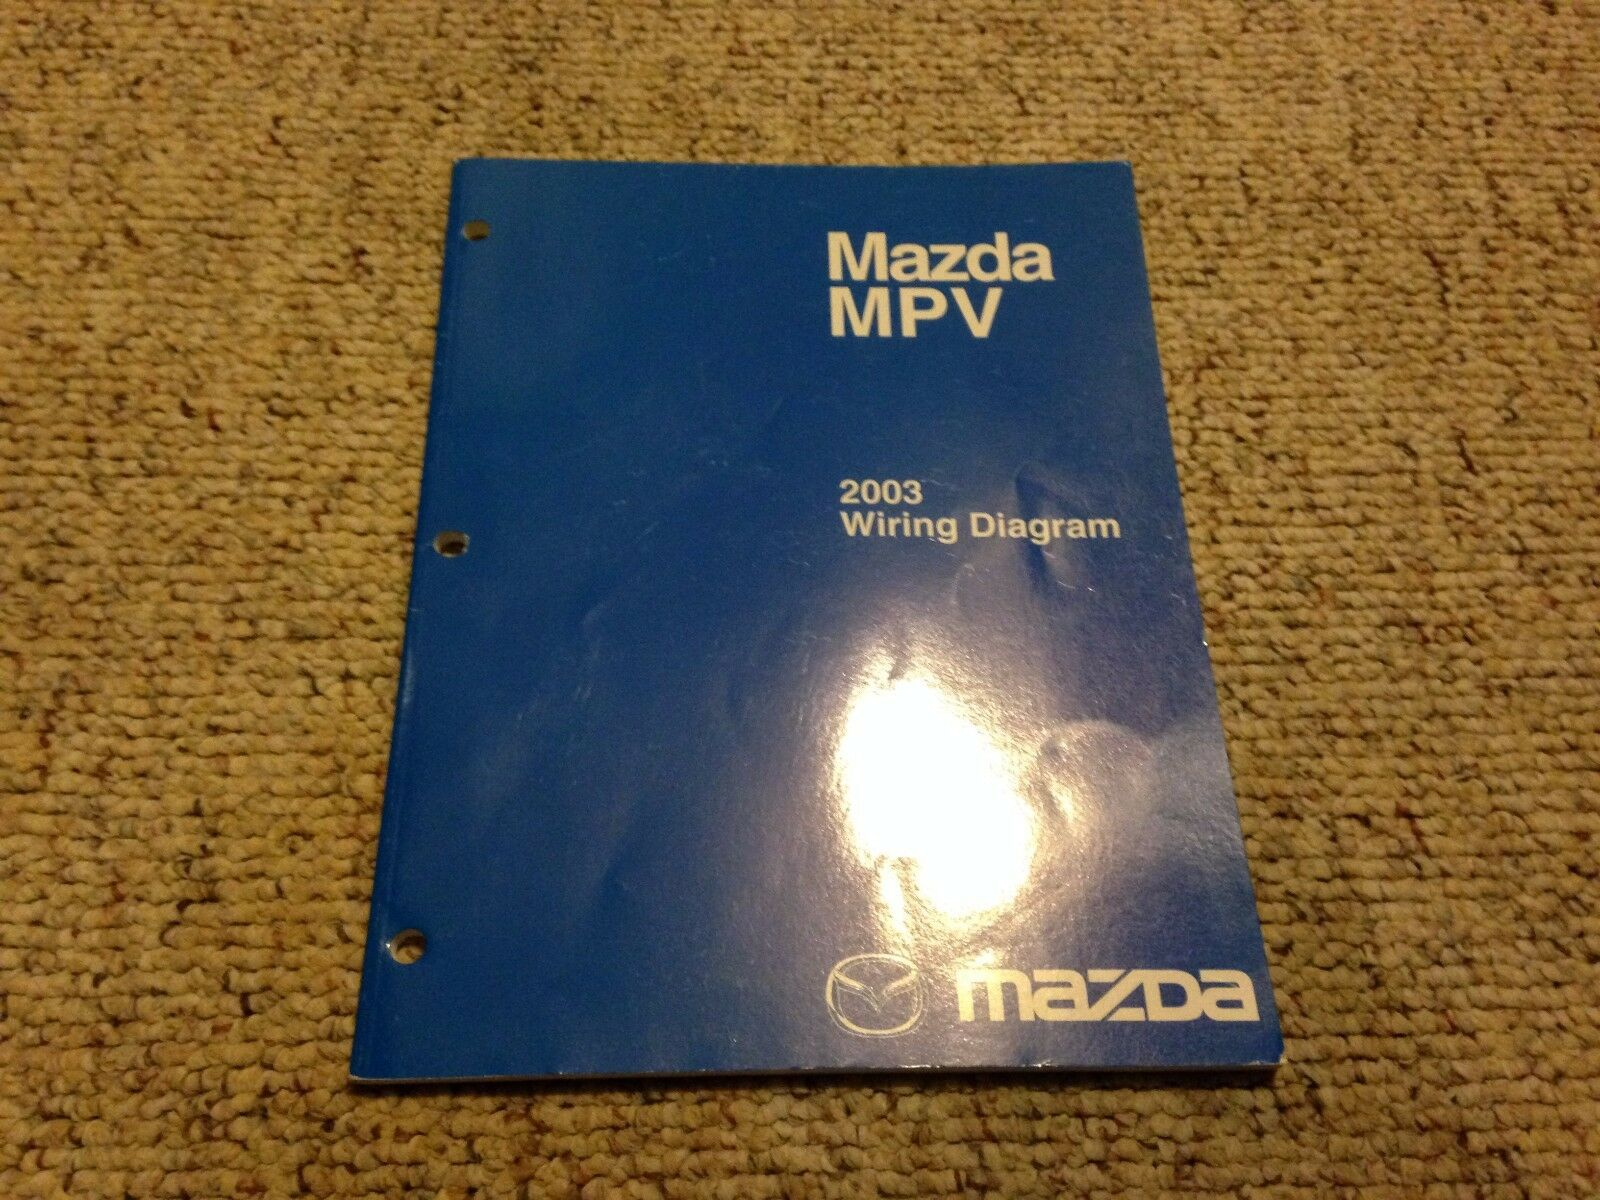 2003 Mazda MPV Factory Original Electrical Wiring Diagram Manual Book 1 of  1Only 1 available ...